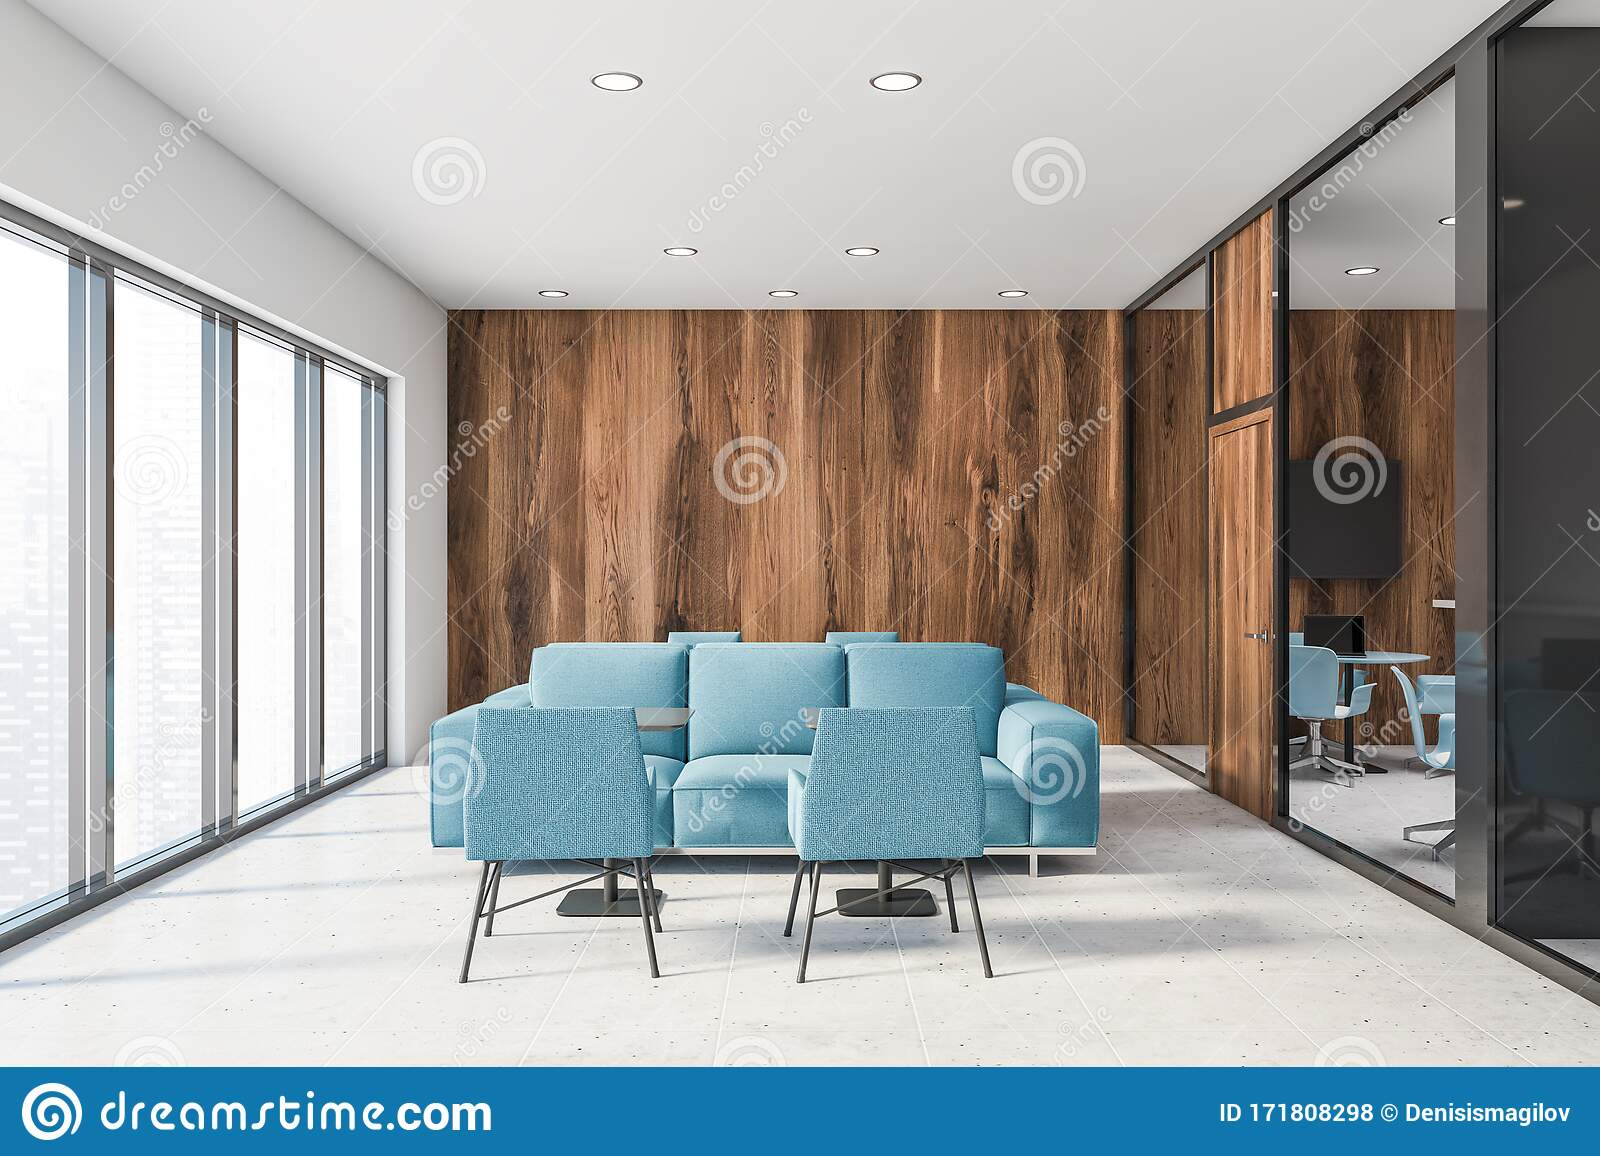 White And Wooden Office Lounge Blue Sofas Stock Illustration Illustration Of Lounge Horizontal 171808298